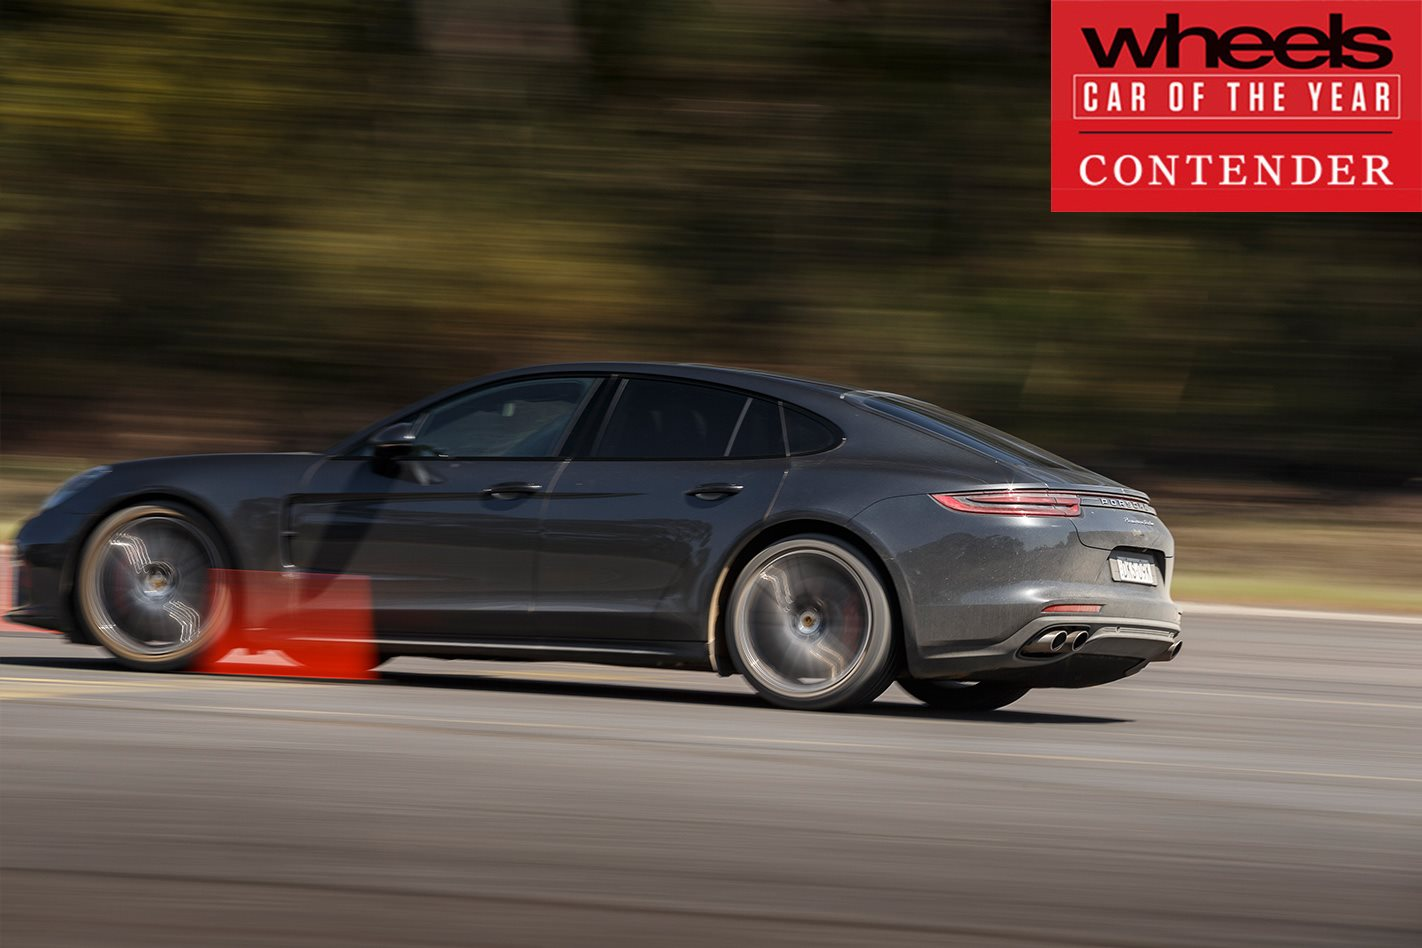 Porsche Panamera 2018 Car Of The Year Review Wheels